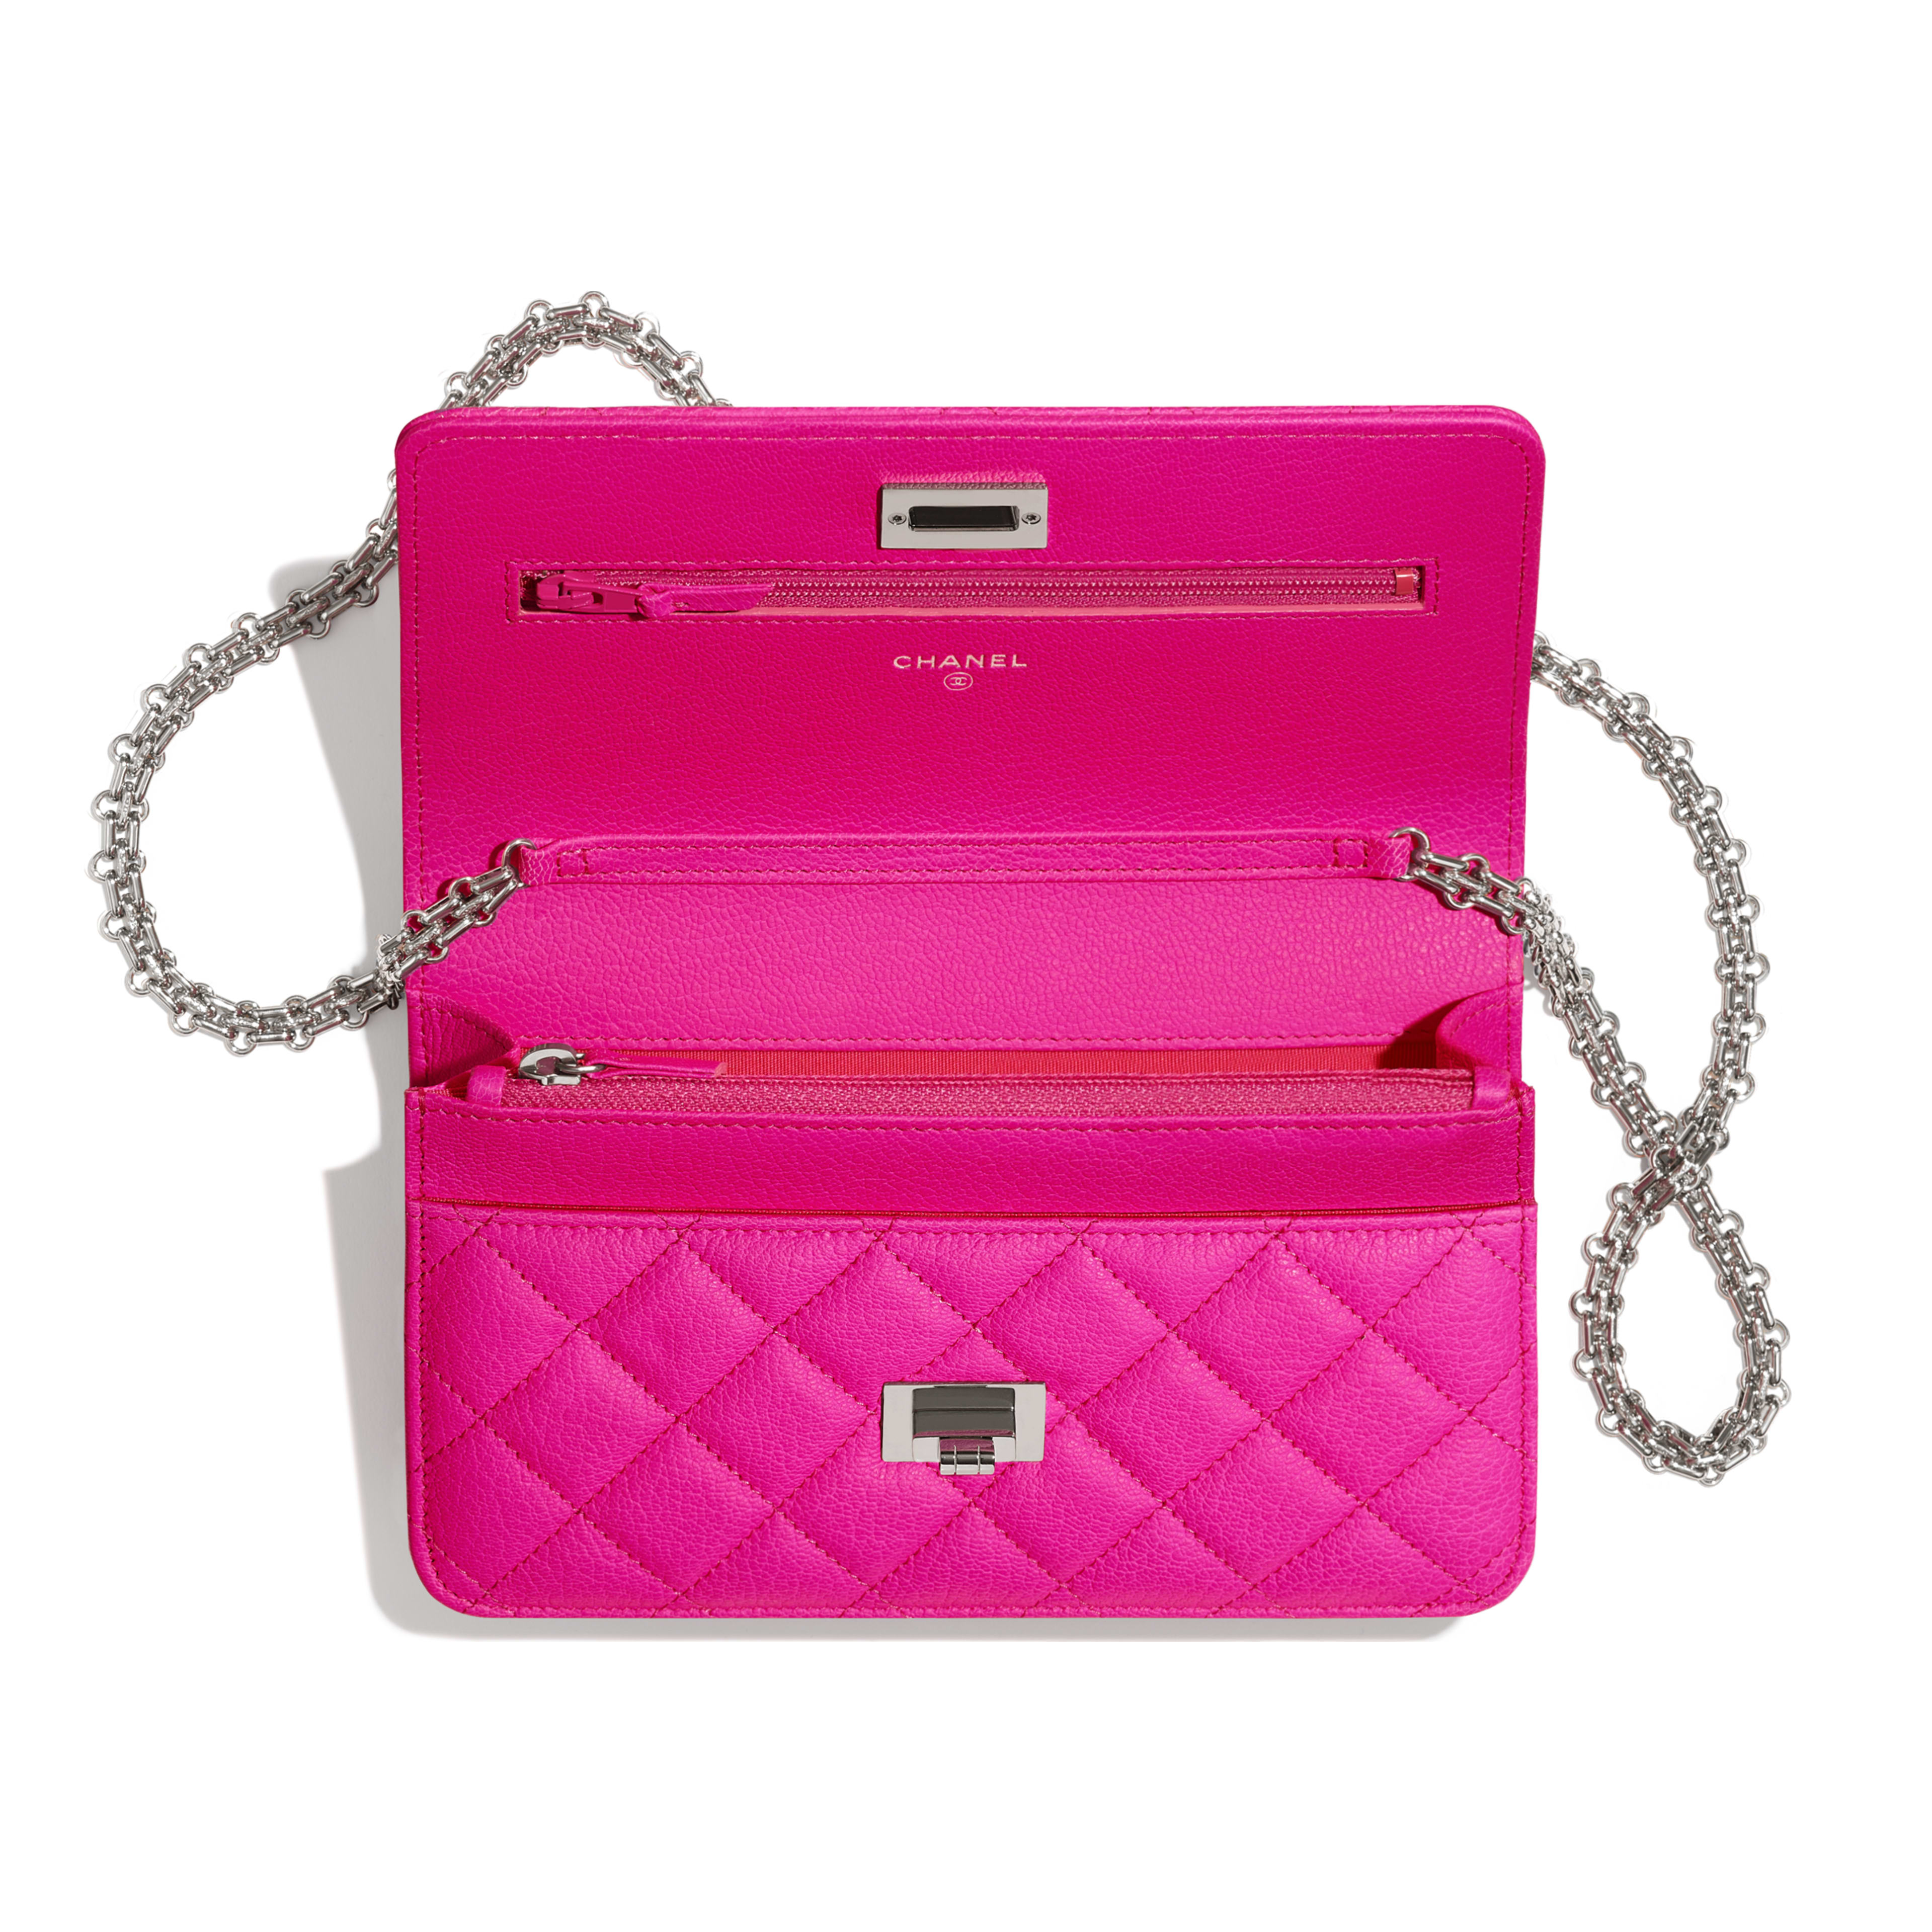 2.55 Wallet on Chain - Pink - Goatskin & Silver-Tone Metal - Other view - see full sized version